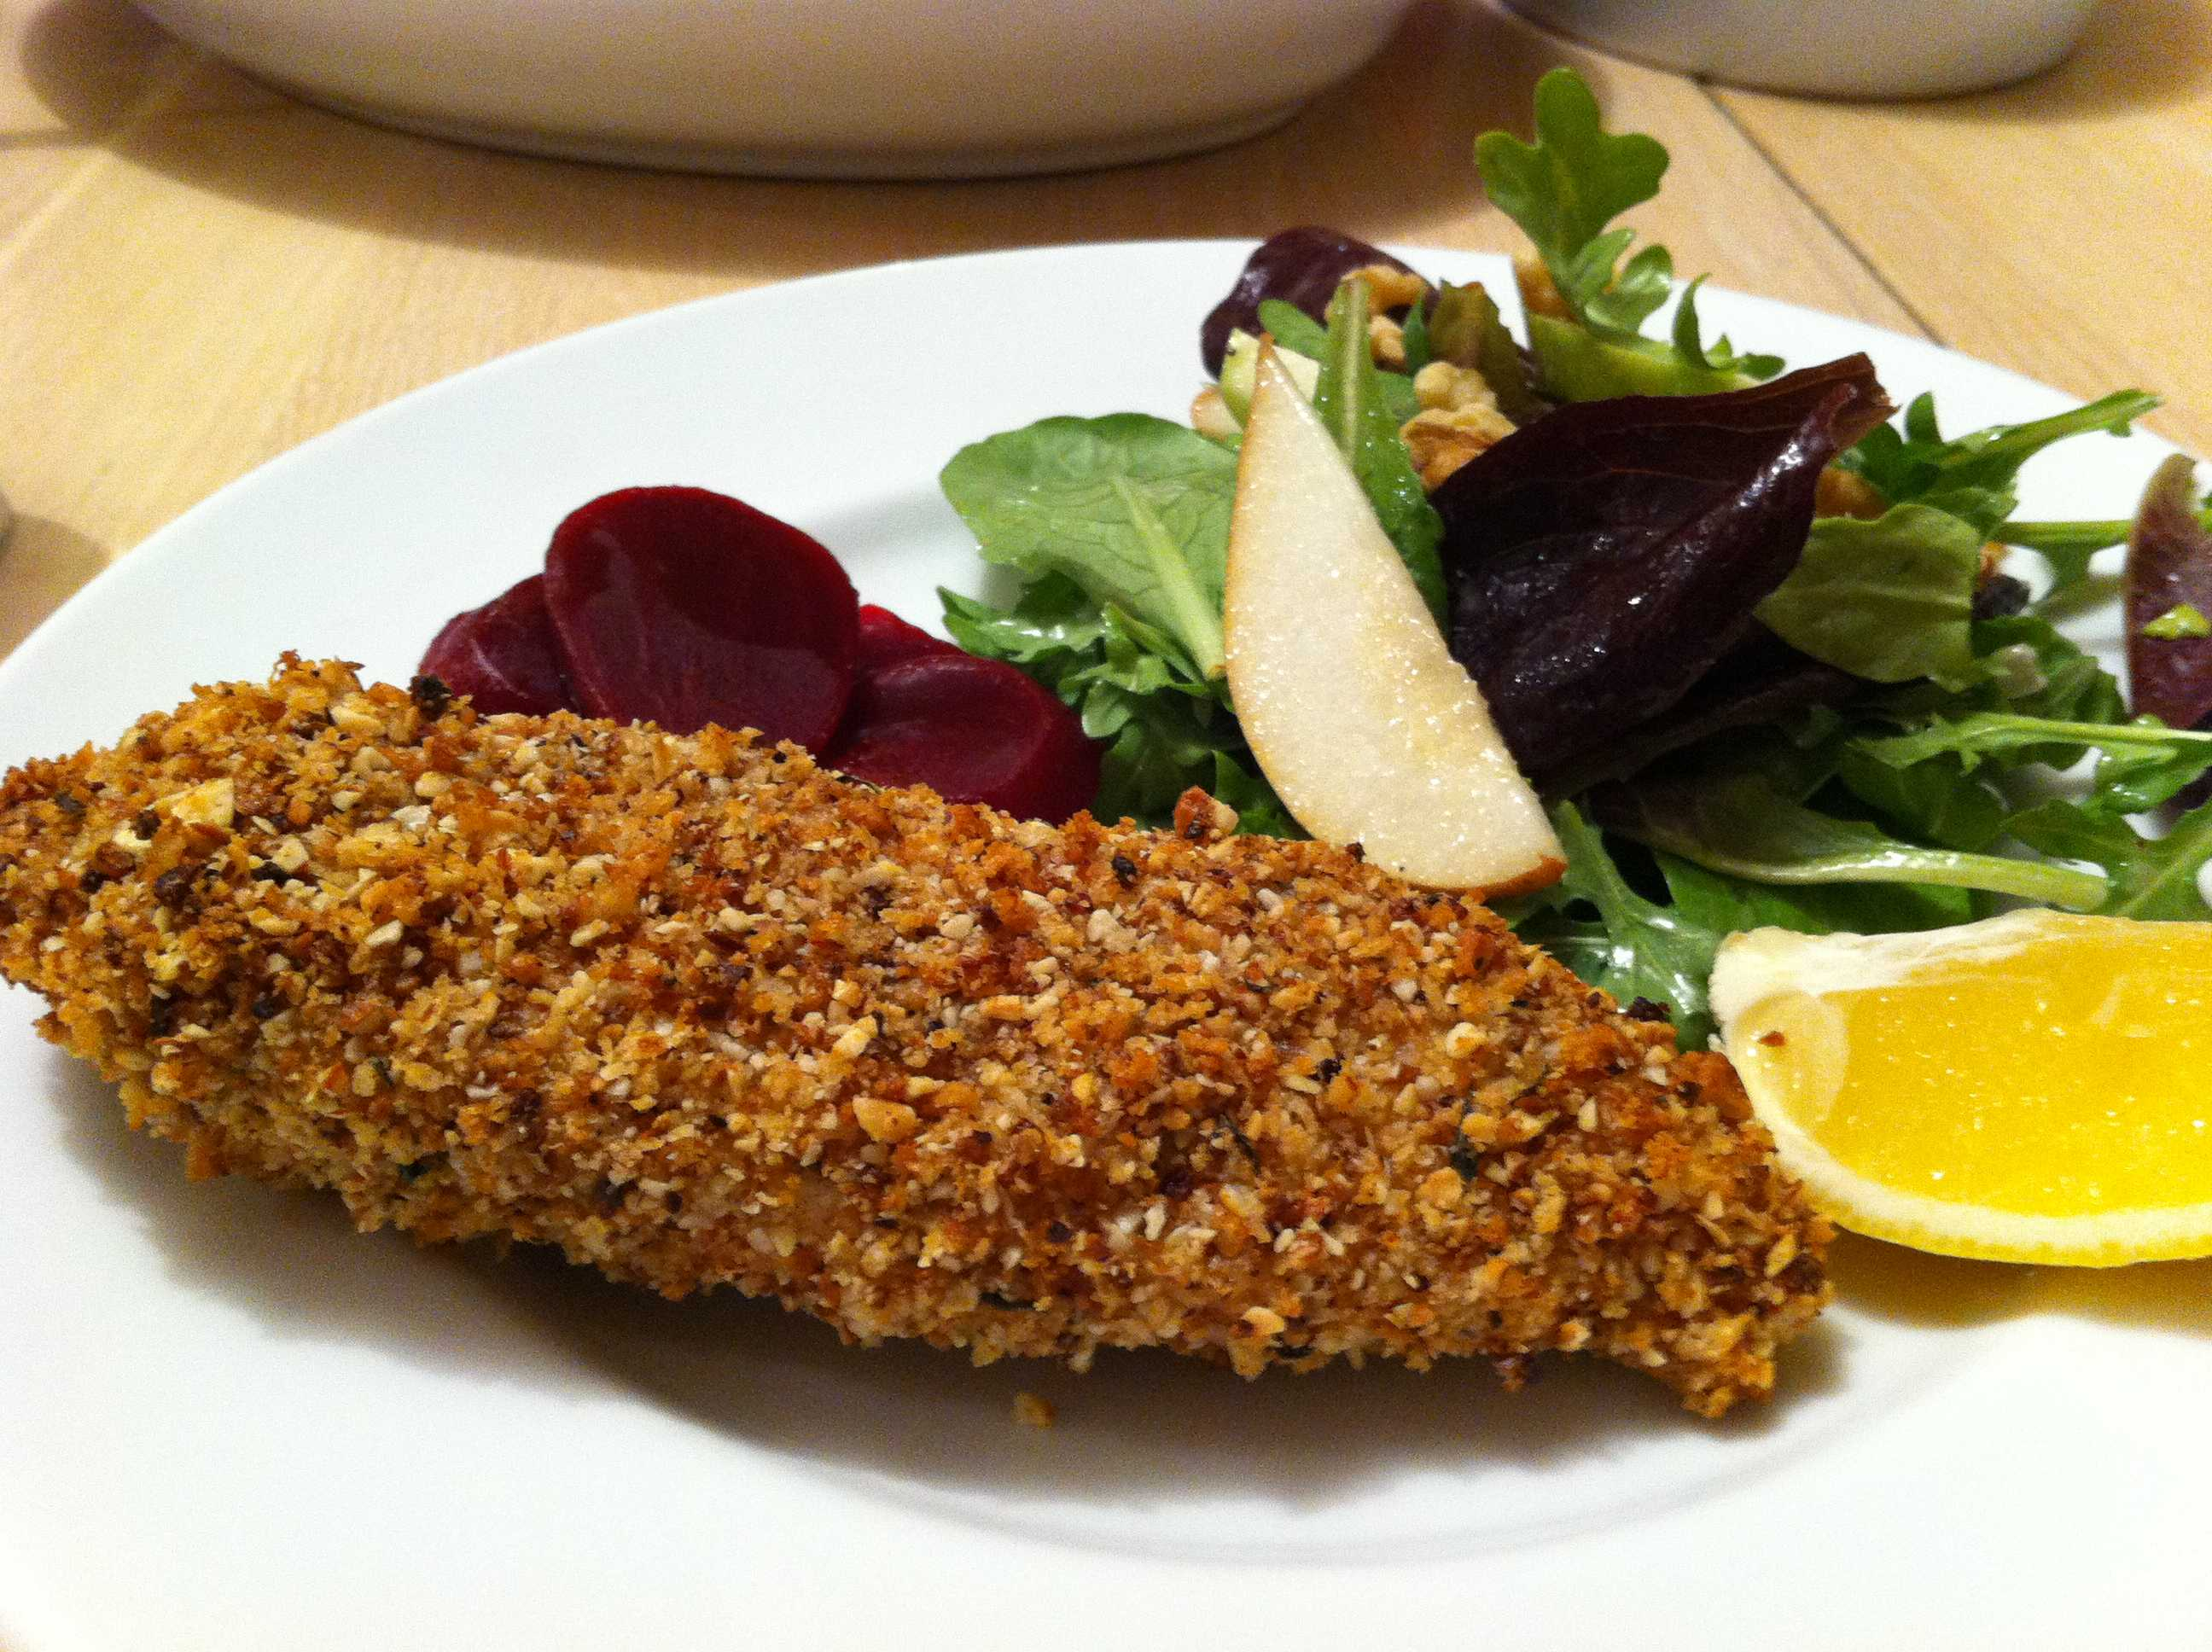 Almond Macadamia Nut crusted Chicken